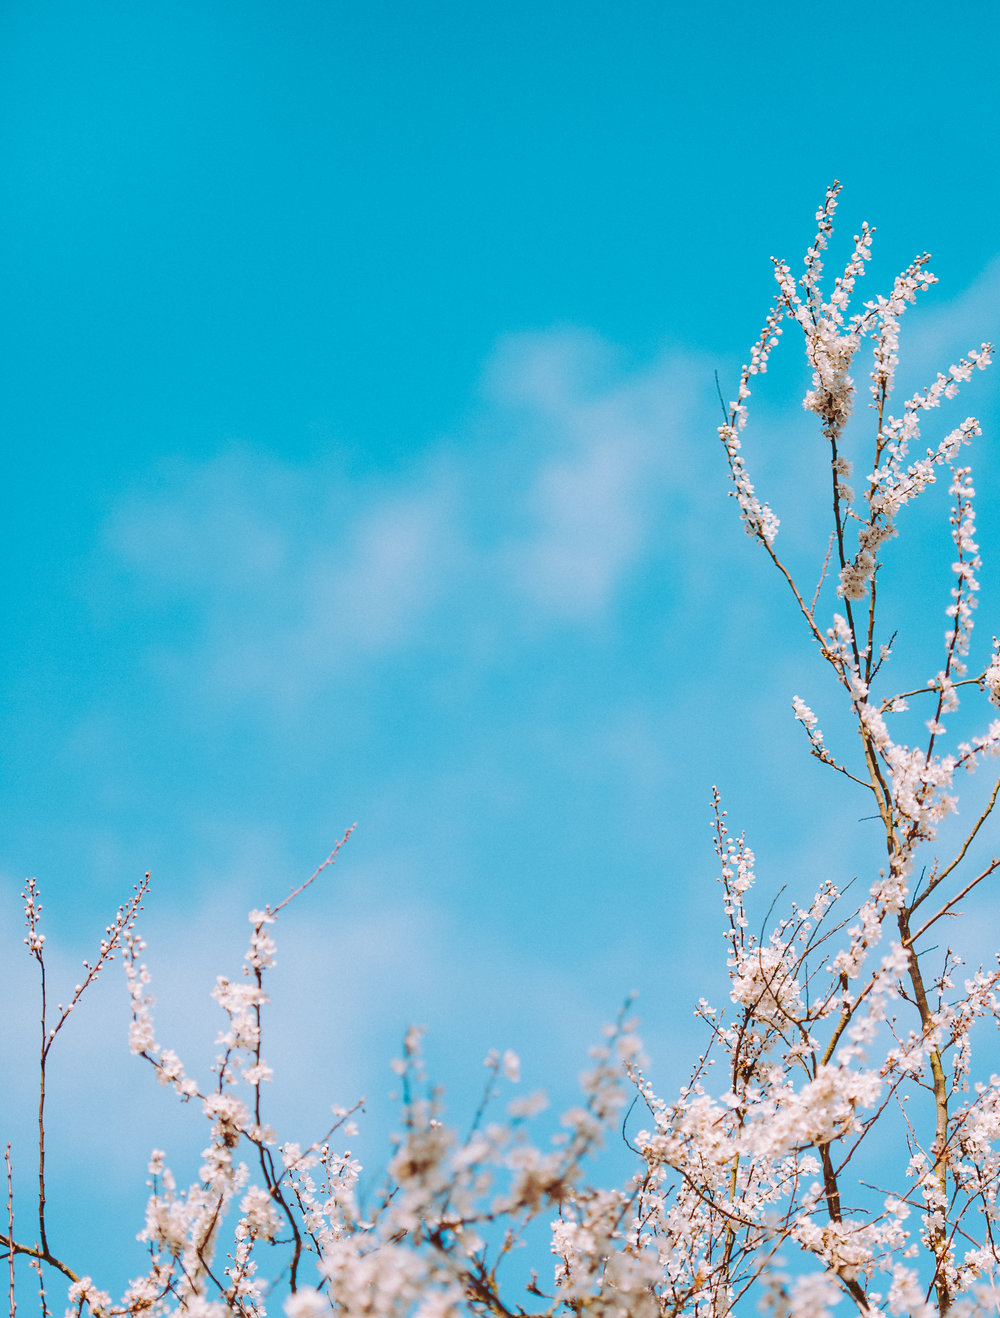 Blue skies and blossom